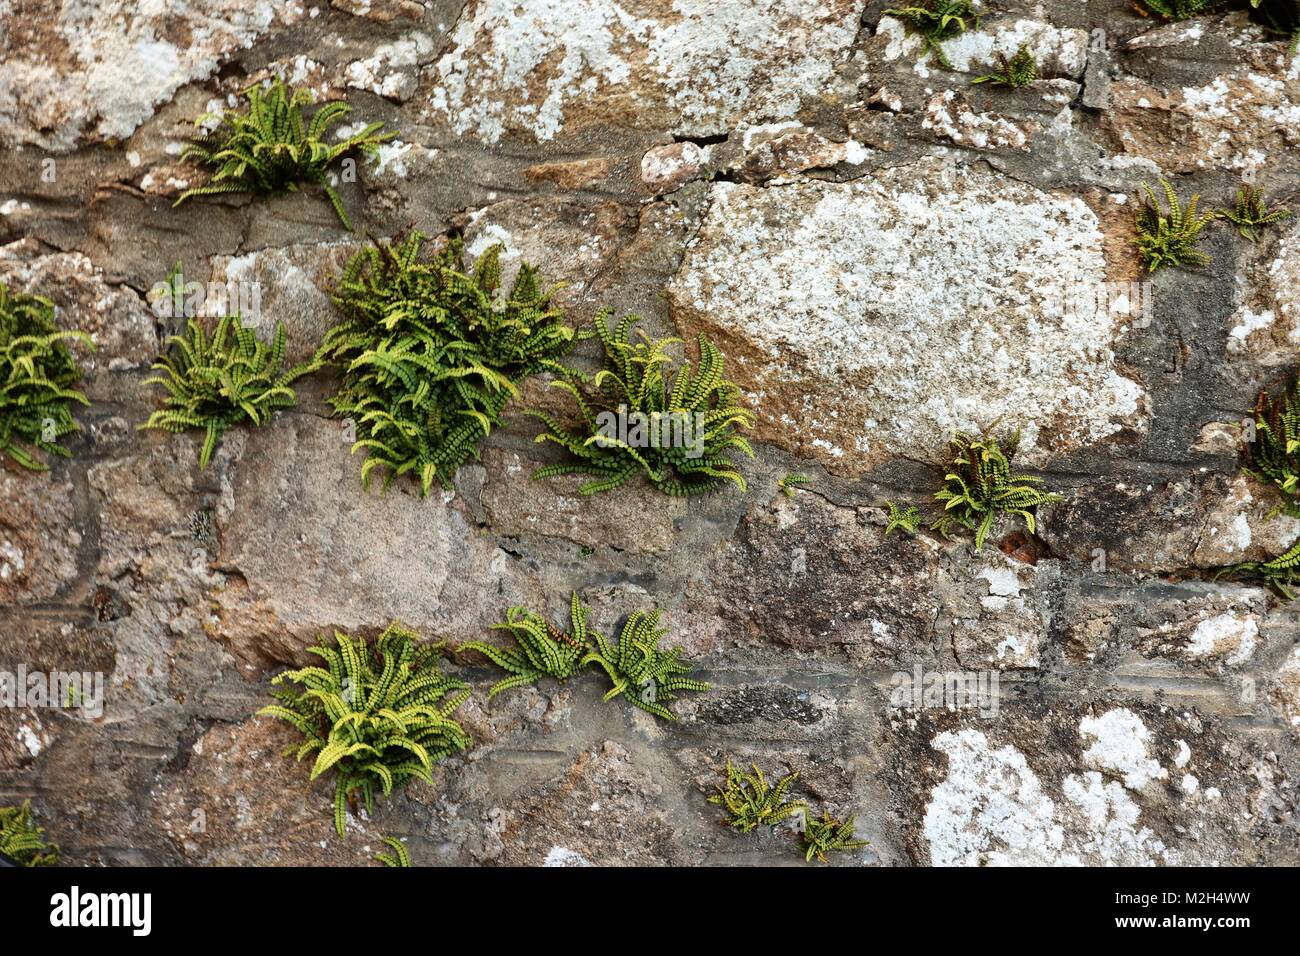 Clipped bushes stock photos clipped bushes stock images for Ornamental garden features